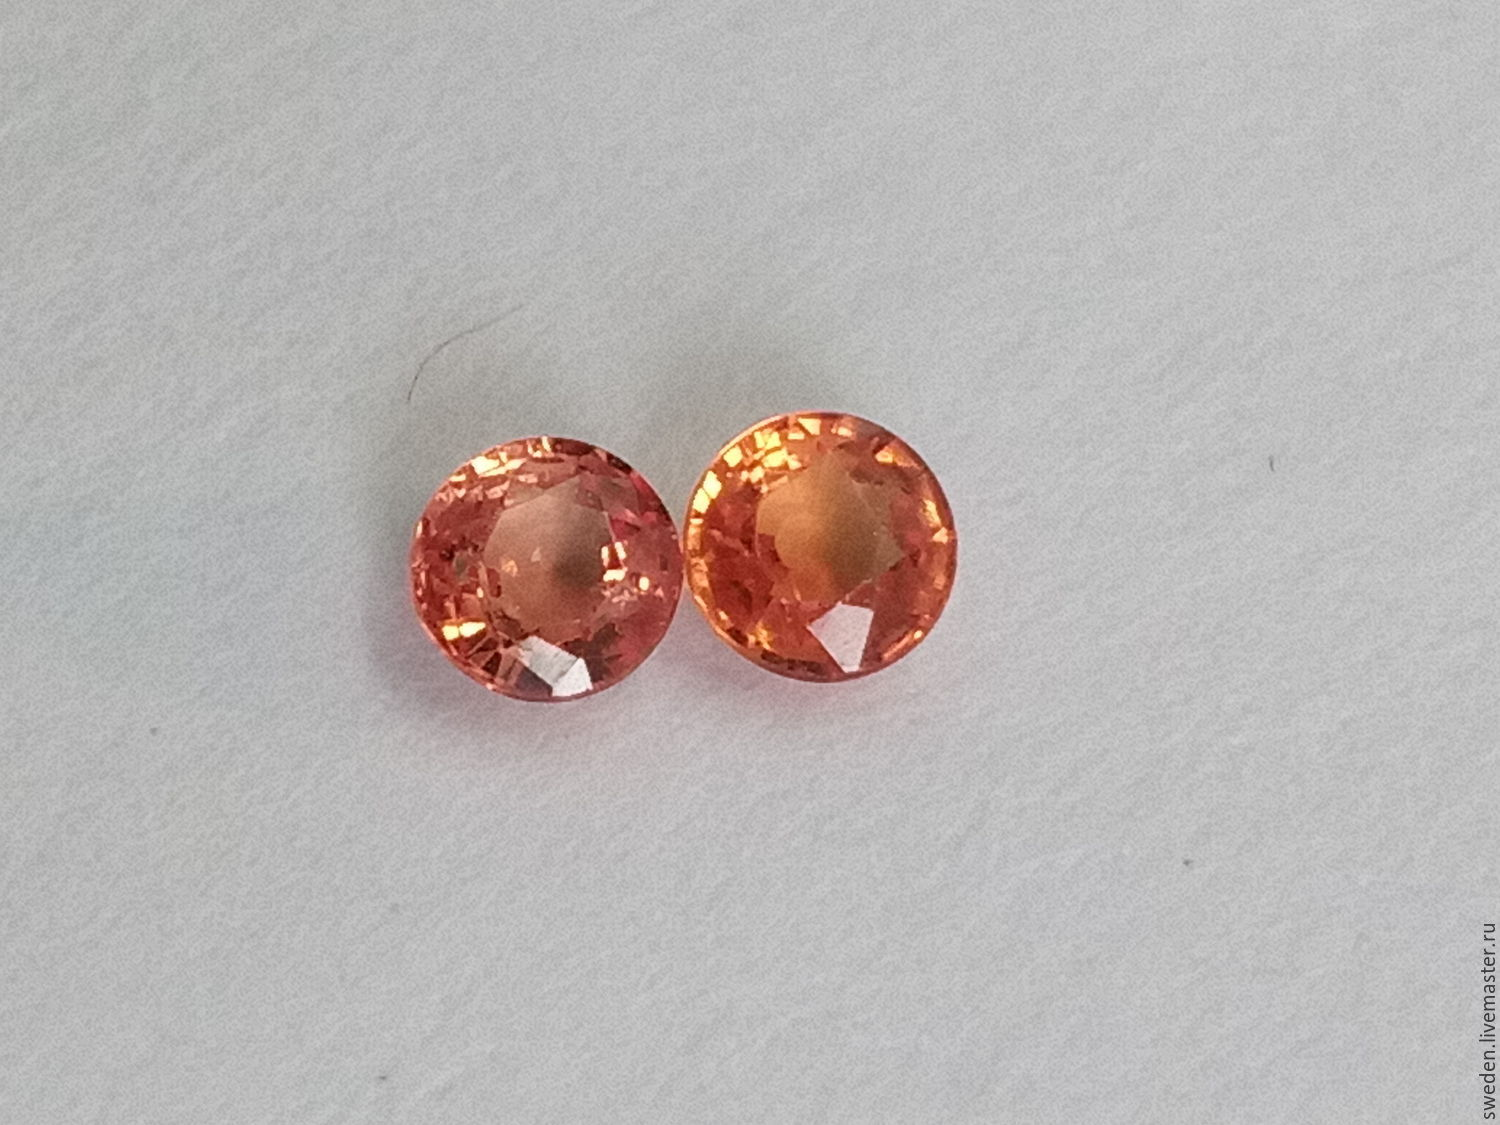 best color products deller padparadscha sapphire drop modernity earrings peach dakota cut cushion